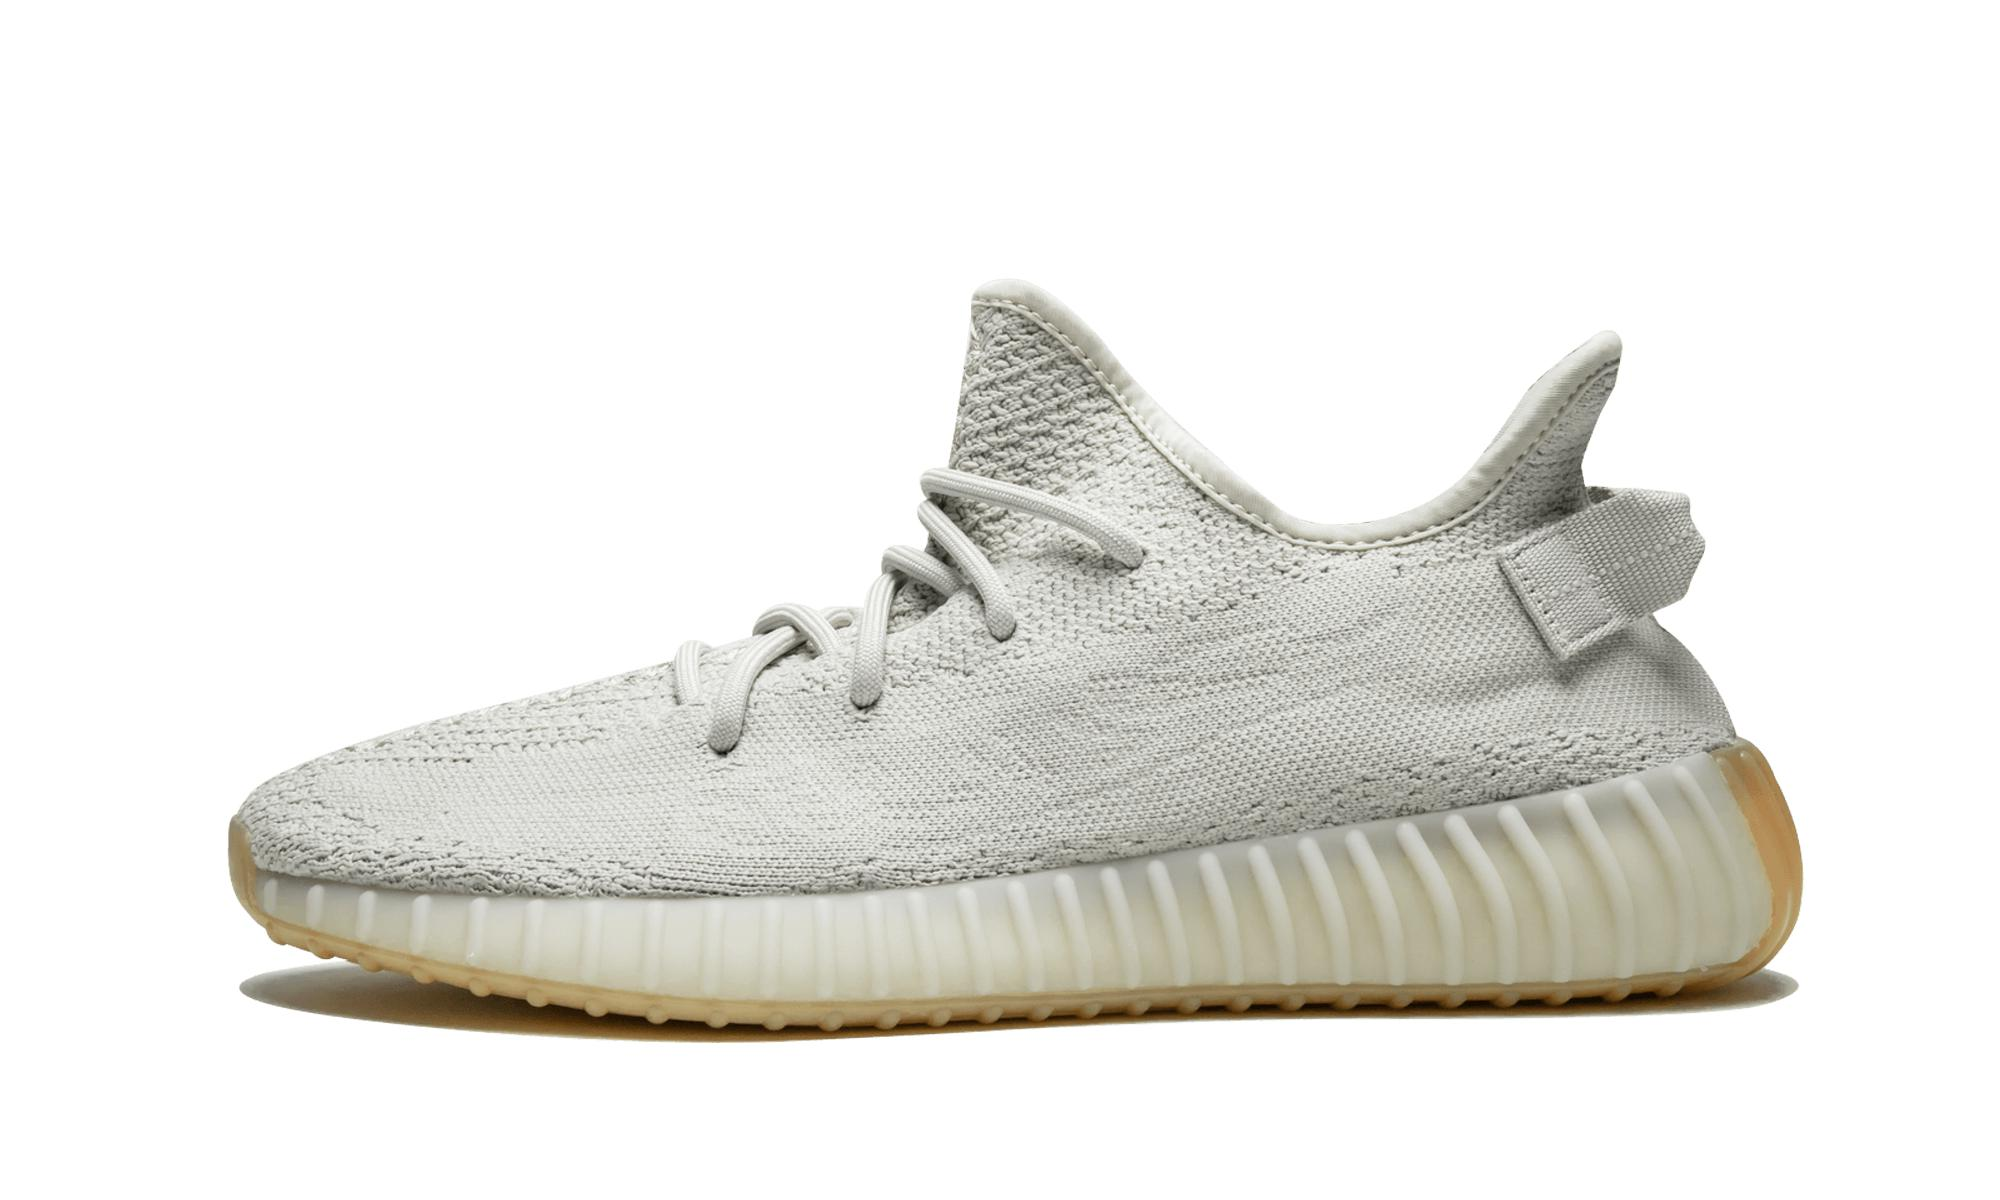 Yeezys Boost 350 V2 Colors